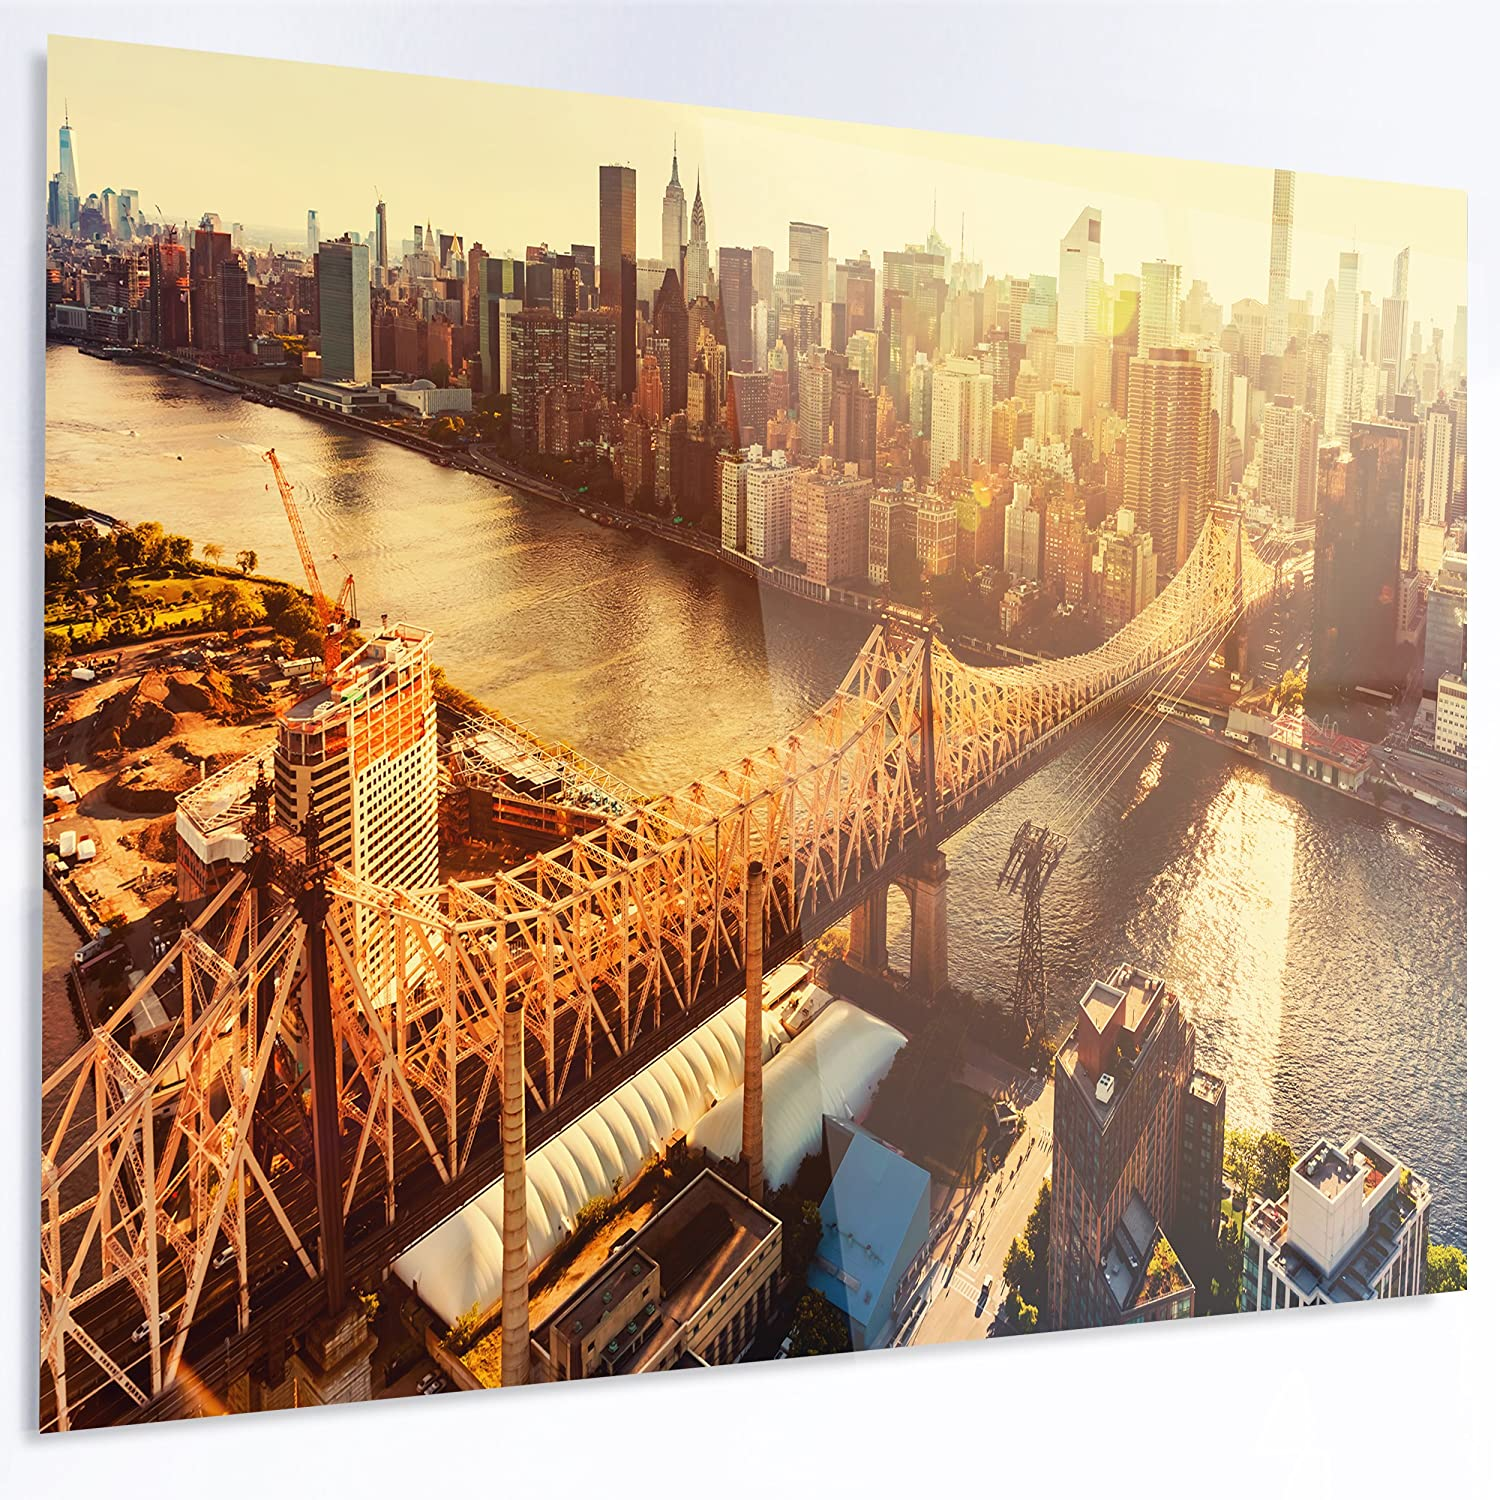 Designart MT14017-628 Queensboro Bridge Over East River Large Cityscape Glossy Metal Wall Art, Yellow, 70x28'